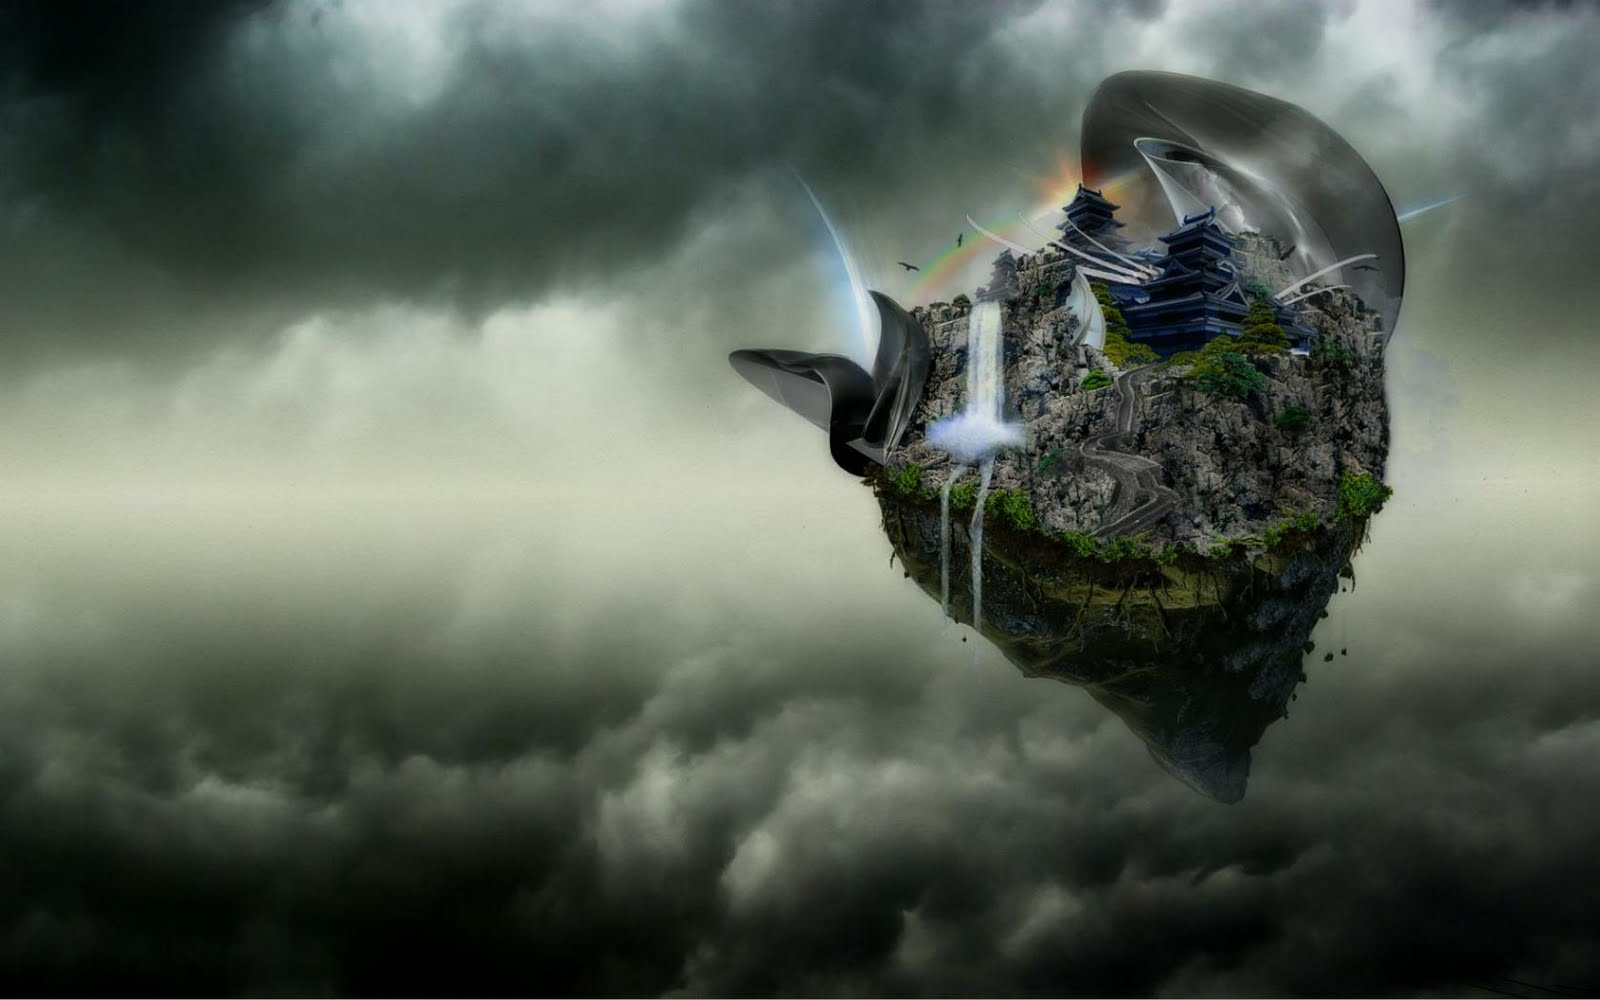 Abstract Nature In Storm Clouds HD Wallpaper | Full HD ...